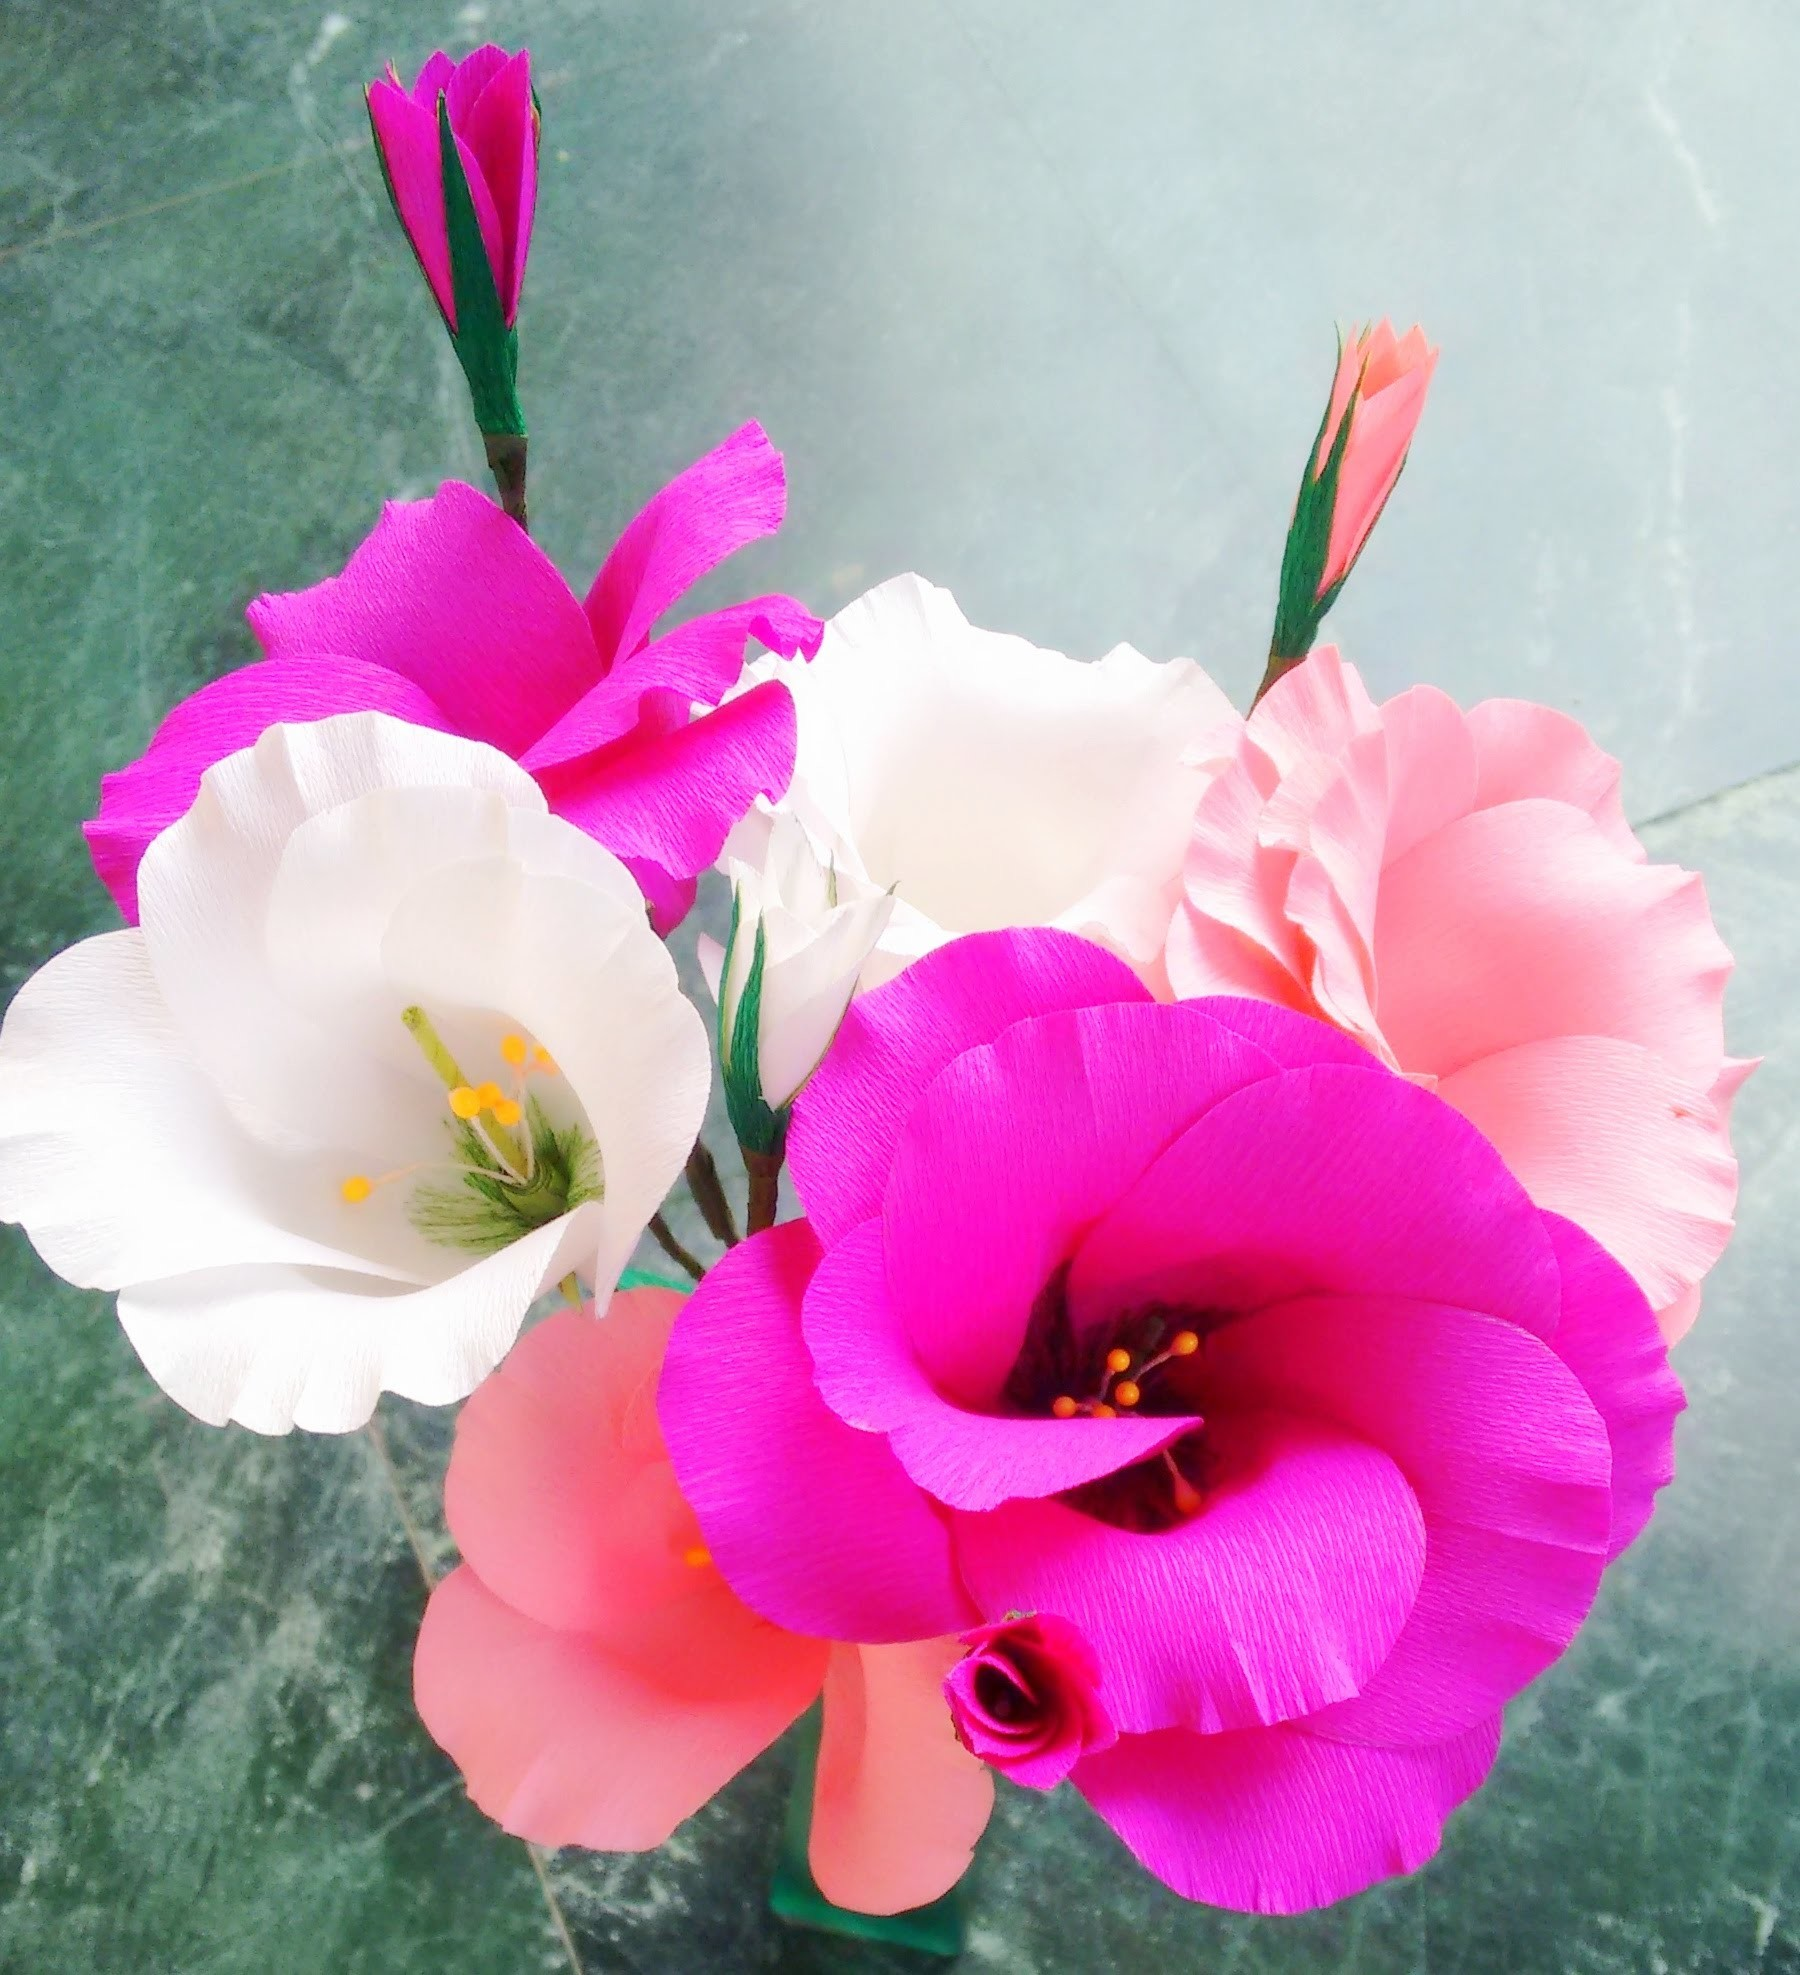 Paper flowers - Eustoma. Lisianthus - Single & Double